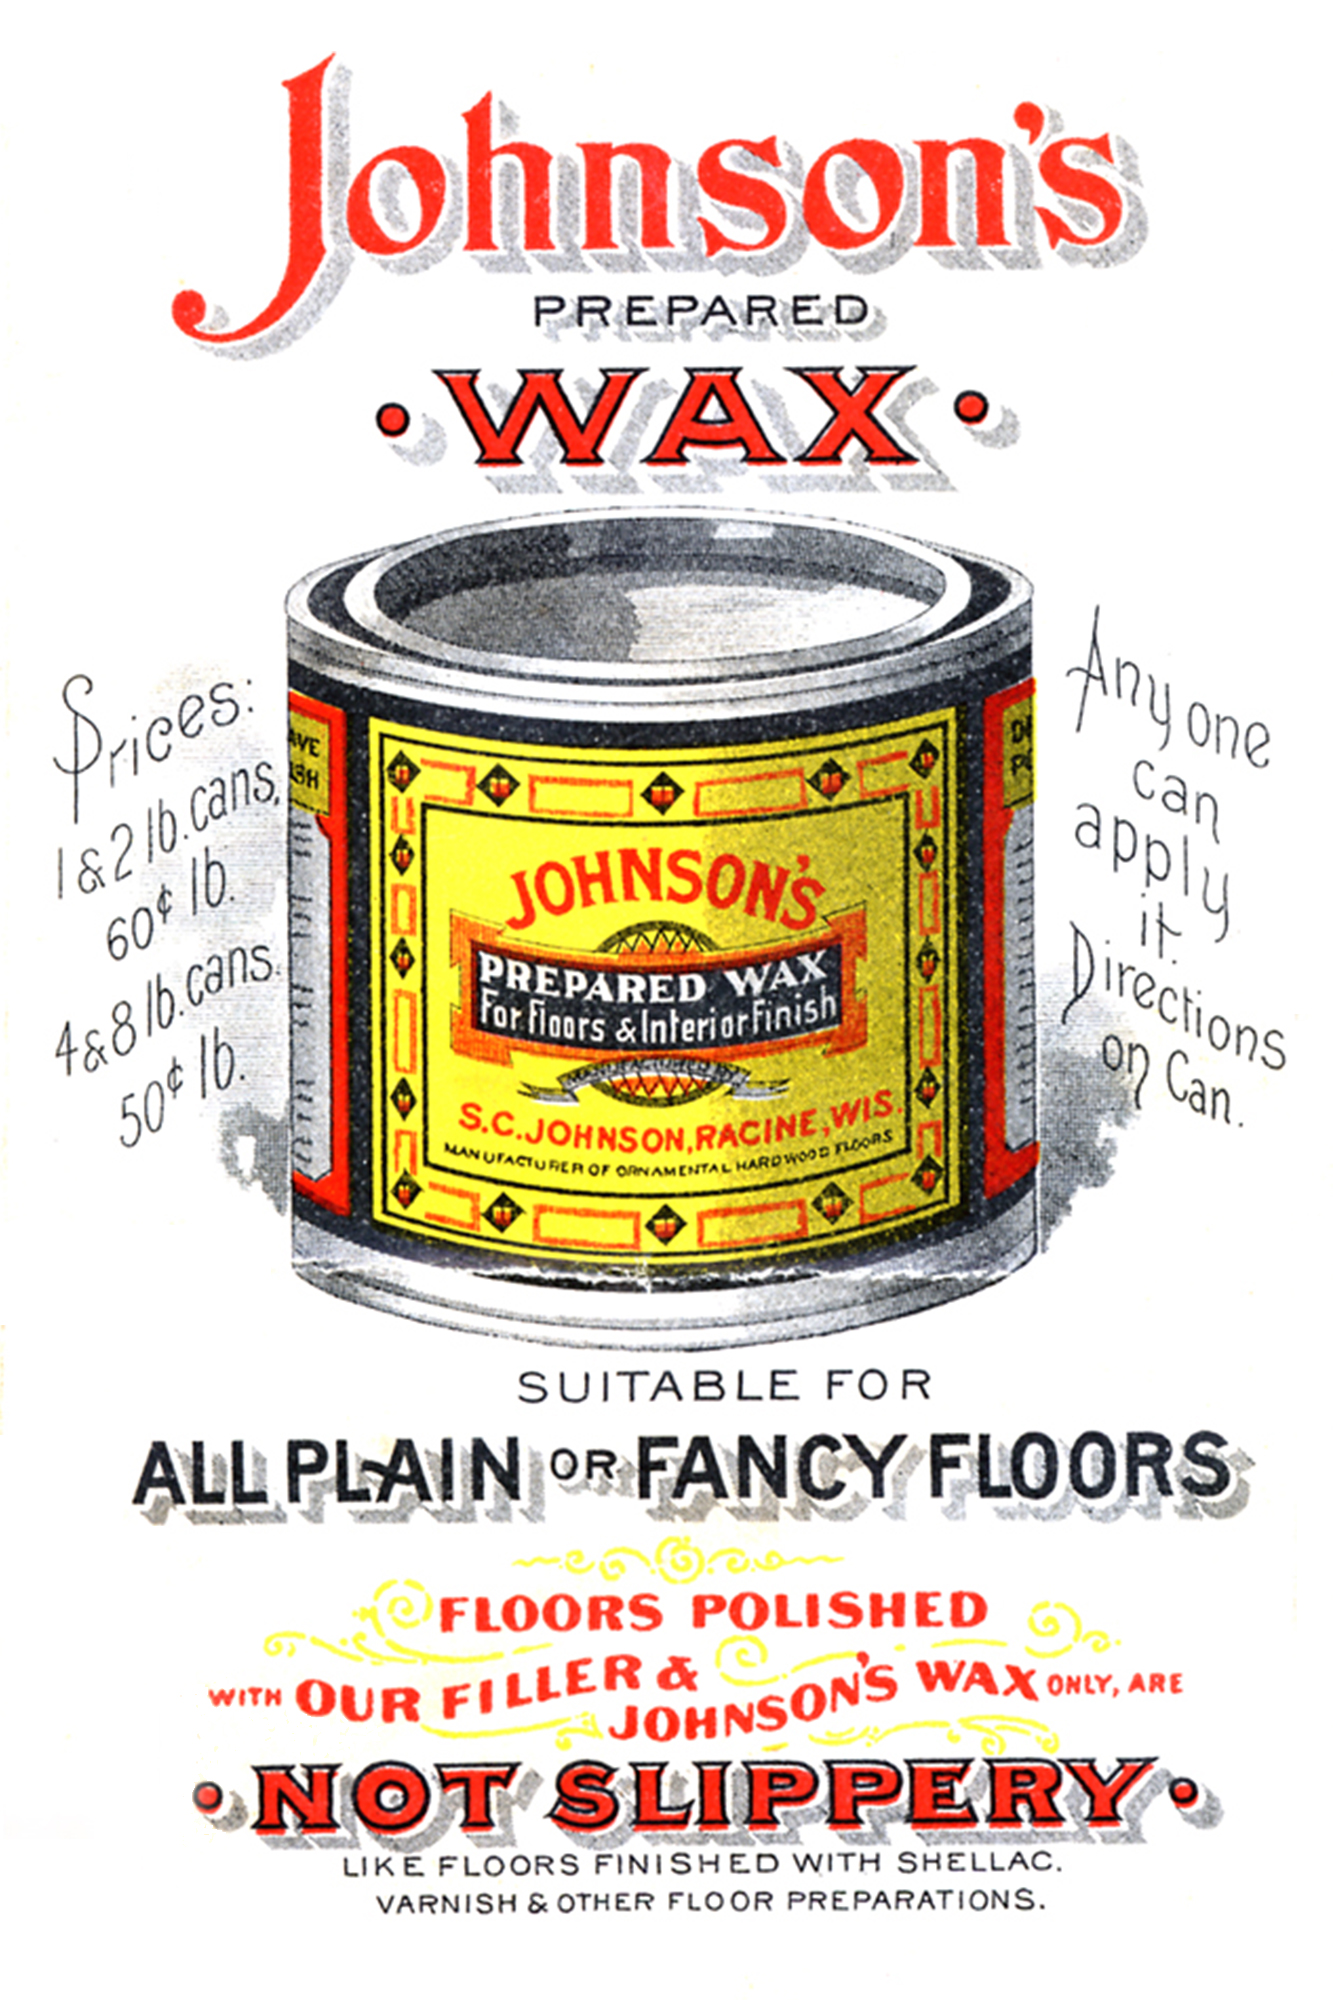 Johnson's Prepared Wax vintage ad from 1898